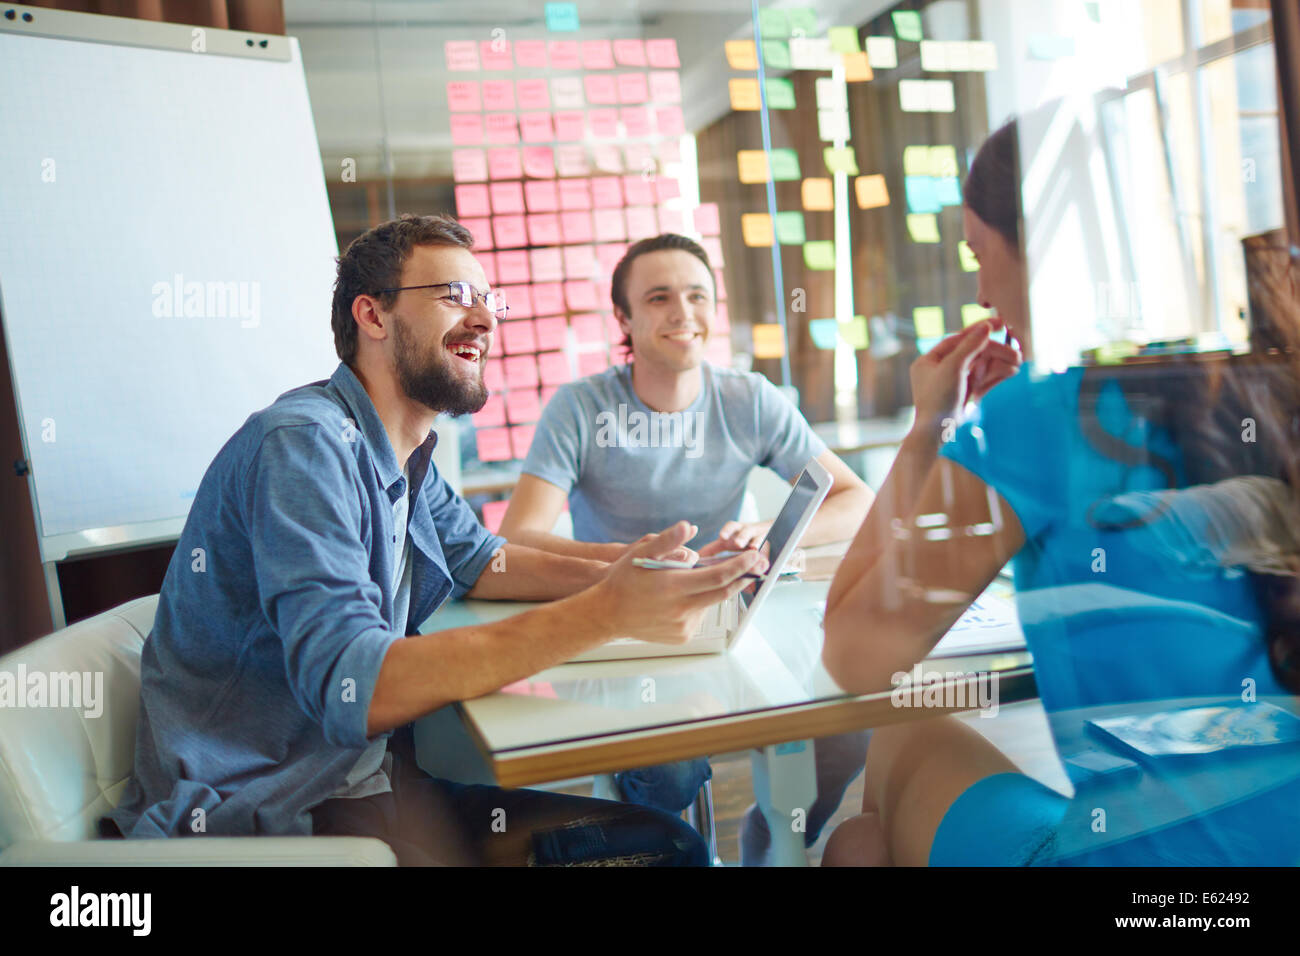 Young business partners sharing ideas and planning work at meeting in office - Stock Image